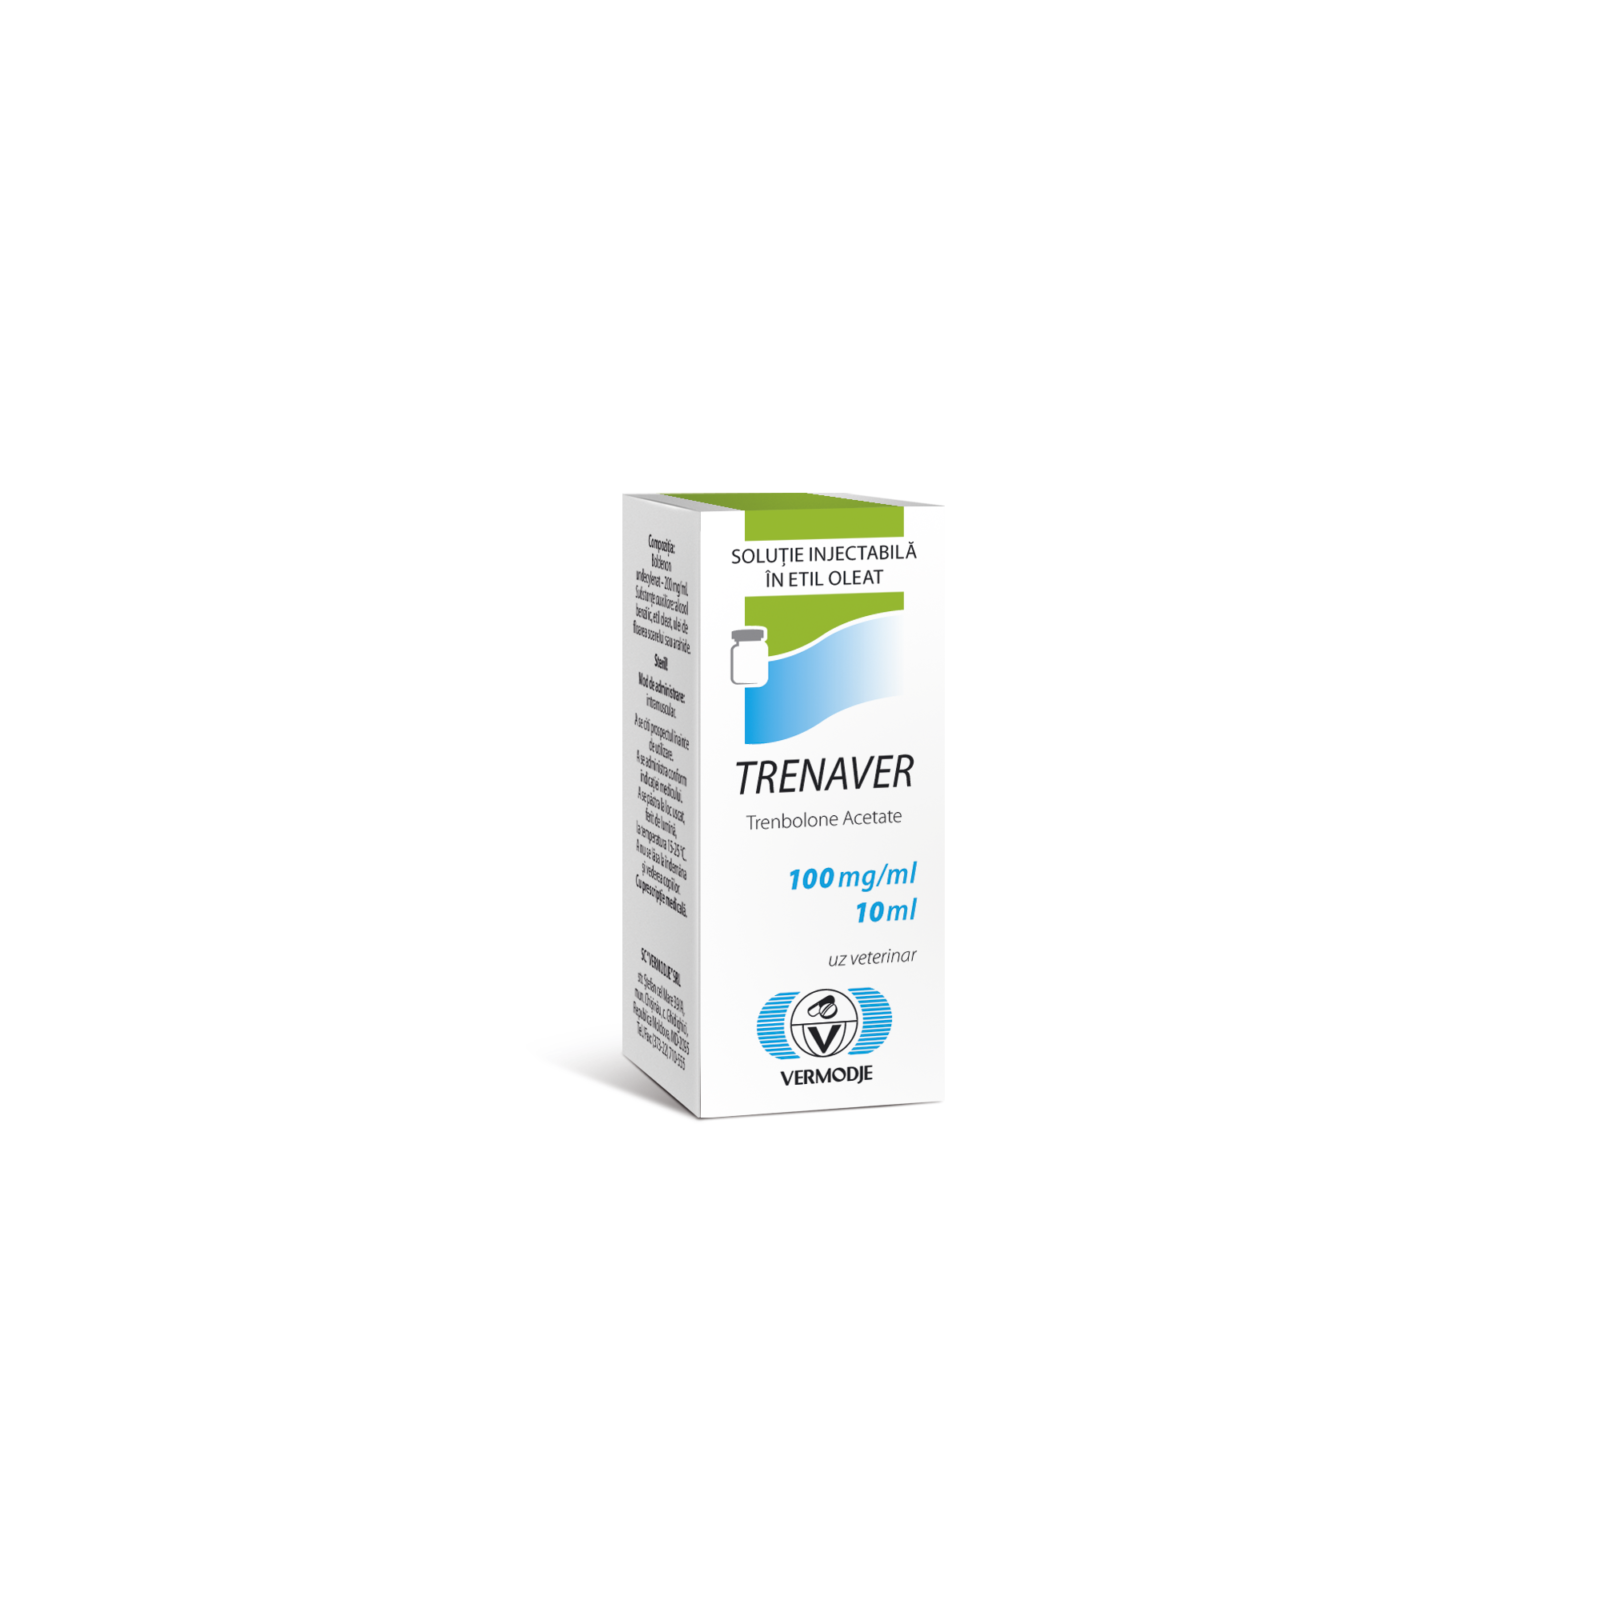 Trenaver (Trenabolone Acetate) 100 mg/ml 10 Vial